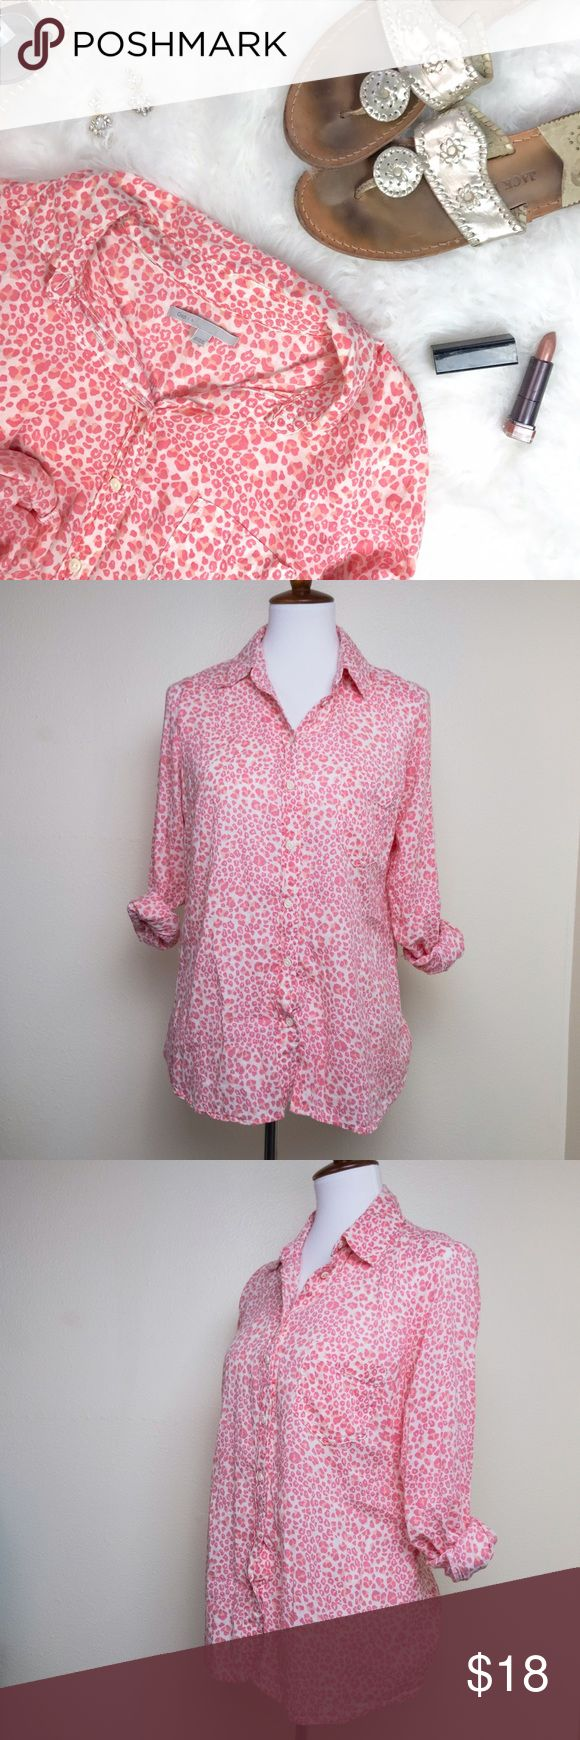 """GAP • Pink and White Cheetah Print Blouse This semi-sheer, ultra-soft blouse is perfect for aaanything! I love it layered under a chambray shirt or over a black pencil skirt. Approximate measurements laying flat: pit to pit 18.5"""", waist 17.5"""", shoulder to hem 25"""". No major flaws; some minor fading and piling near the underarm. NOT outlet; this is from the retail store! GAP Tops Button Down Shirts"""